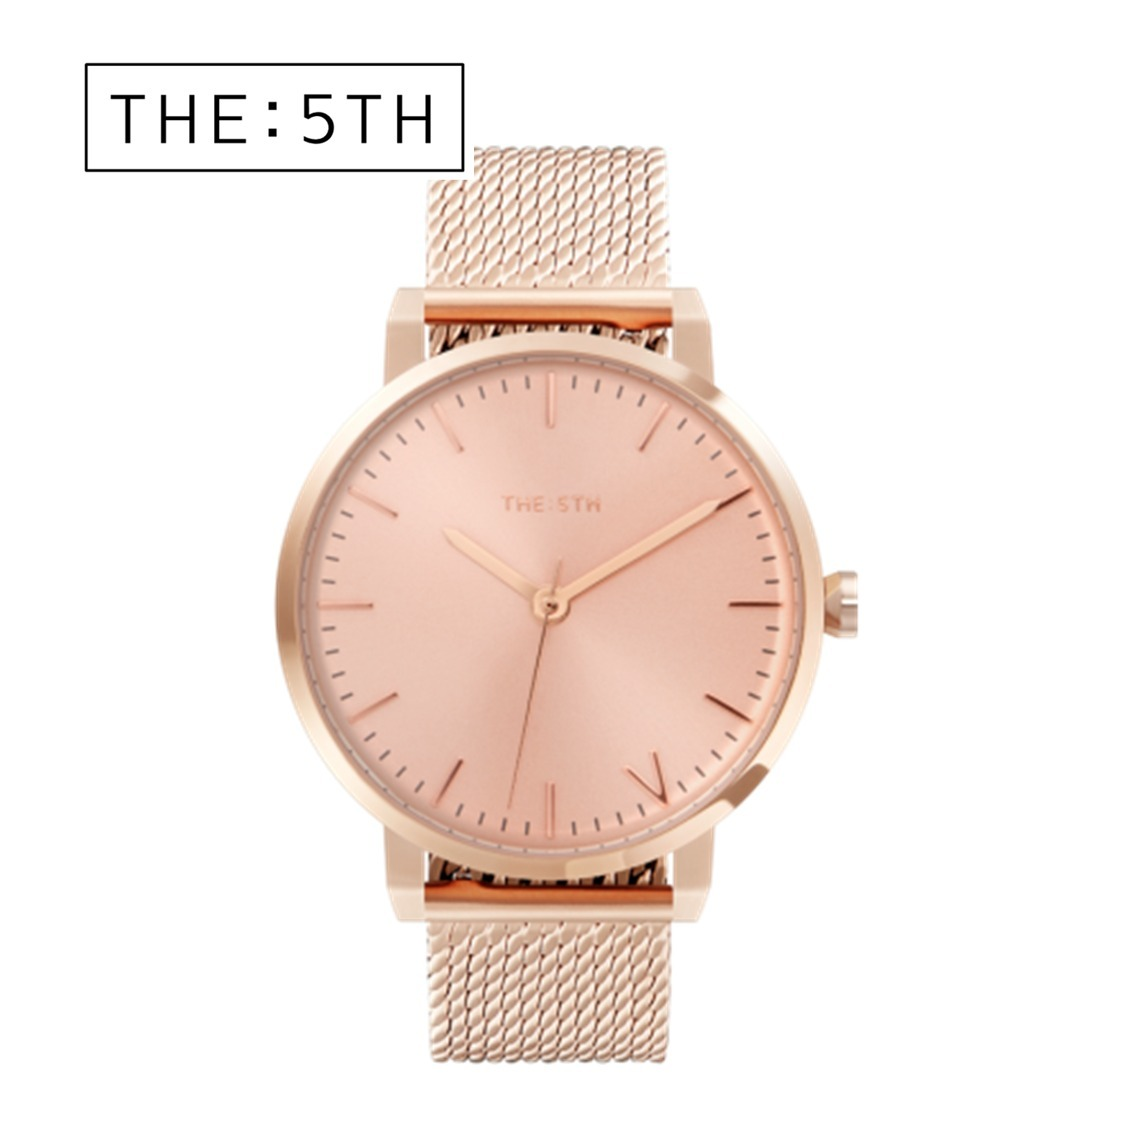 The Fifth  Watches  腕時計 BILBAO ARGYLE ユニセックス ピンク